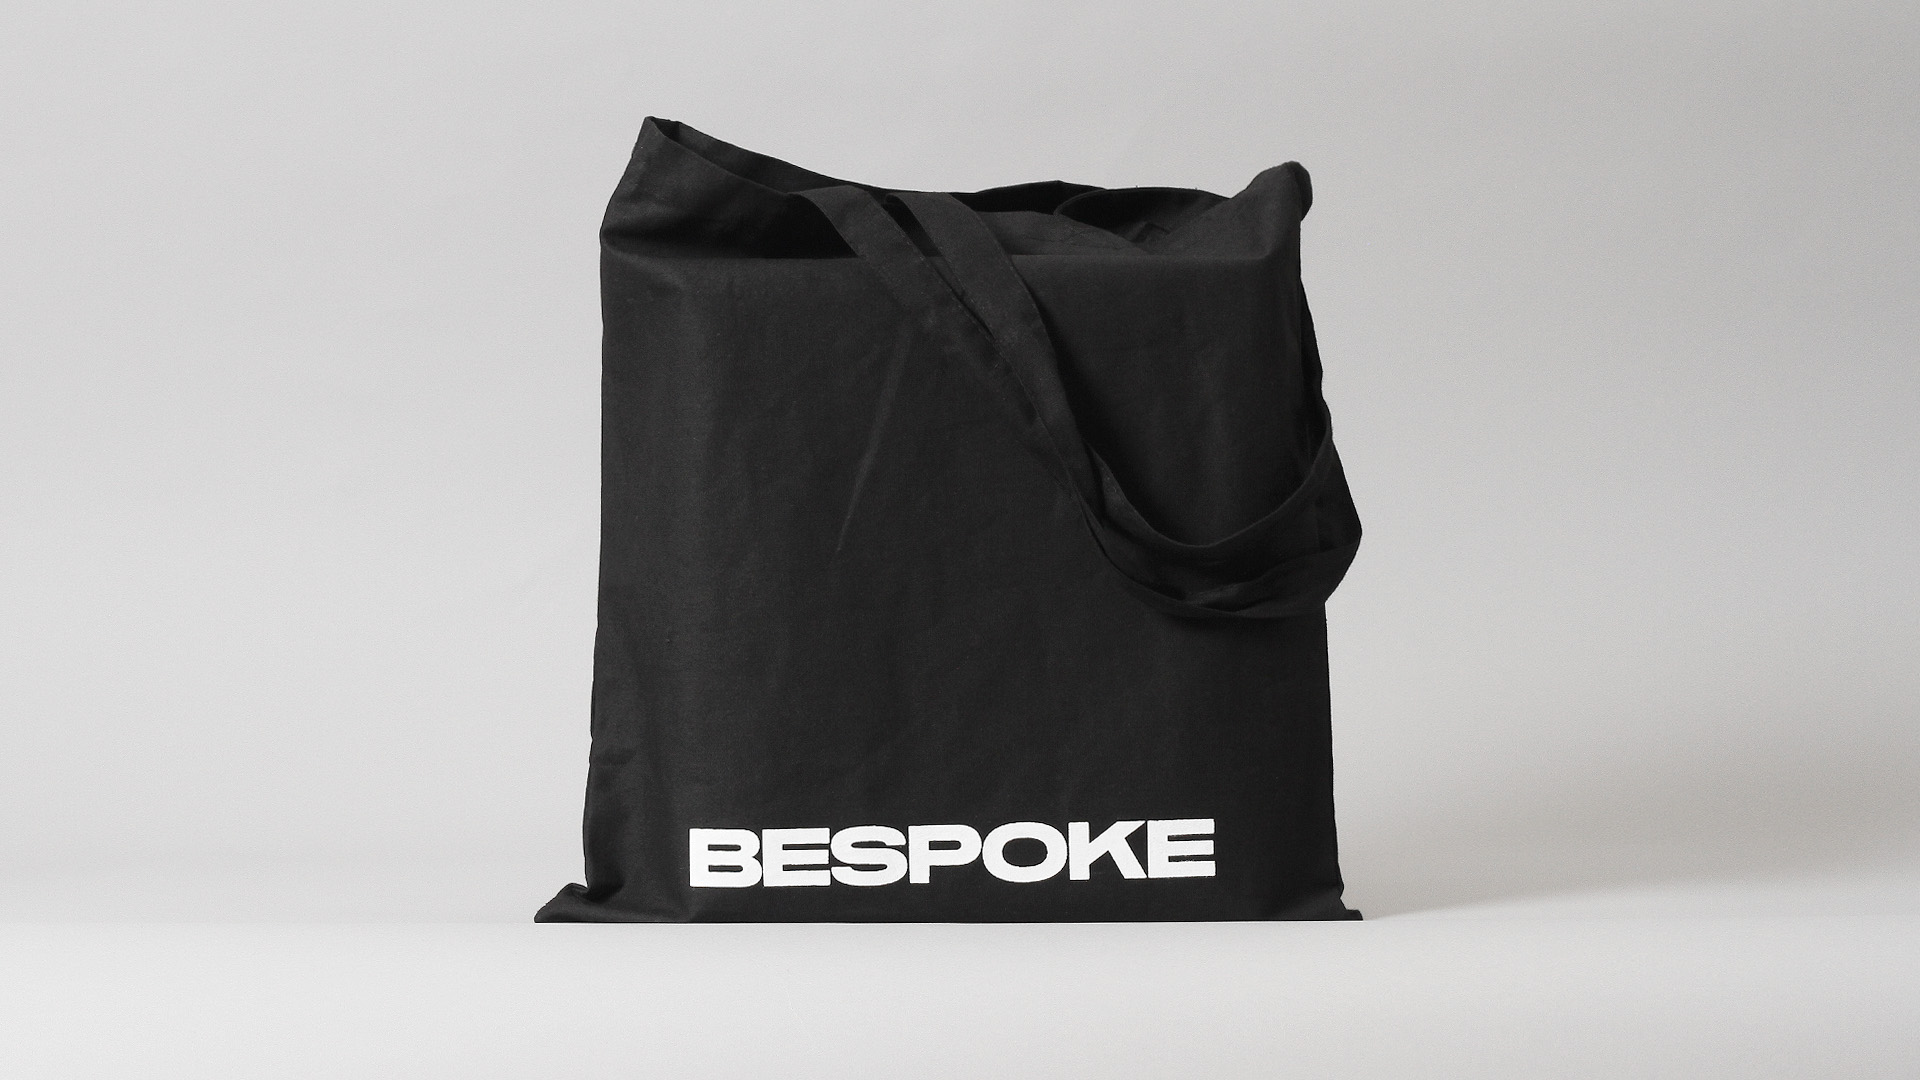 Branded tote bag by New York based DIA for boutique retouching business Bespoke